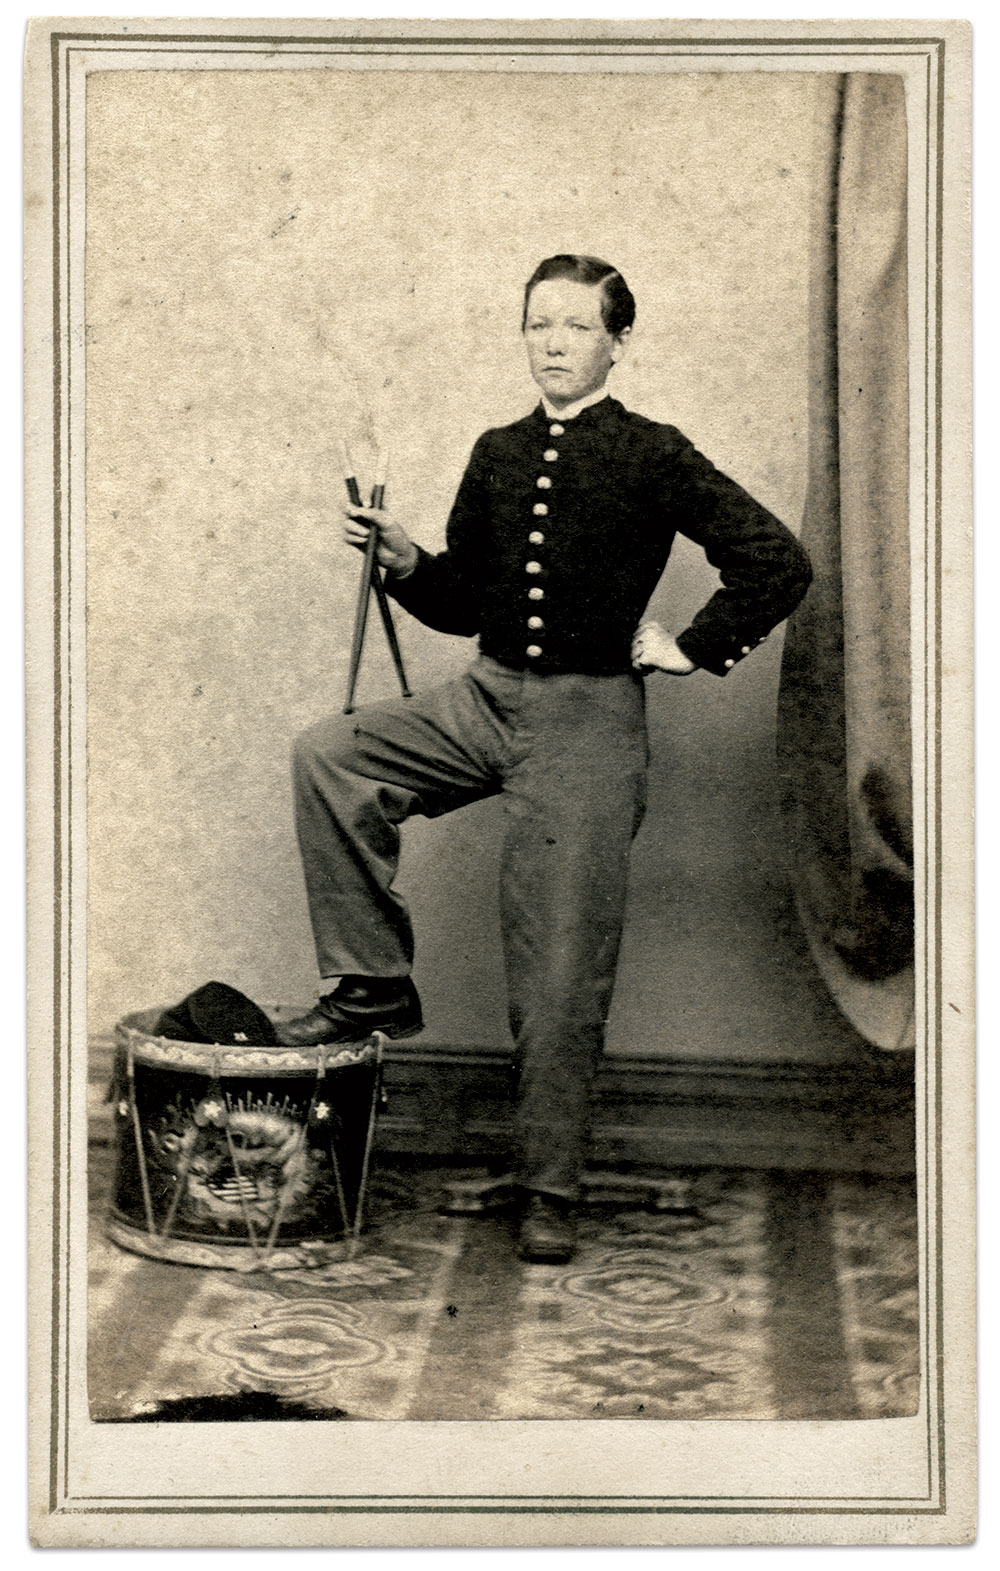 Carte de visite by M.W. Emerson of Lowell, Mass.  Bill Rodio Collection.